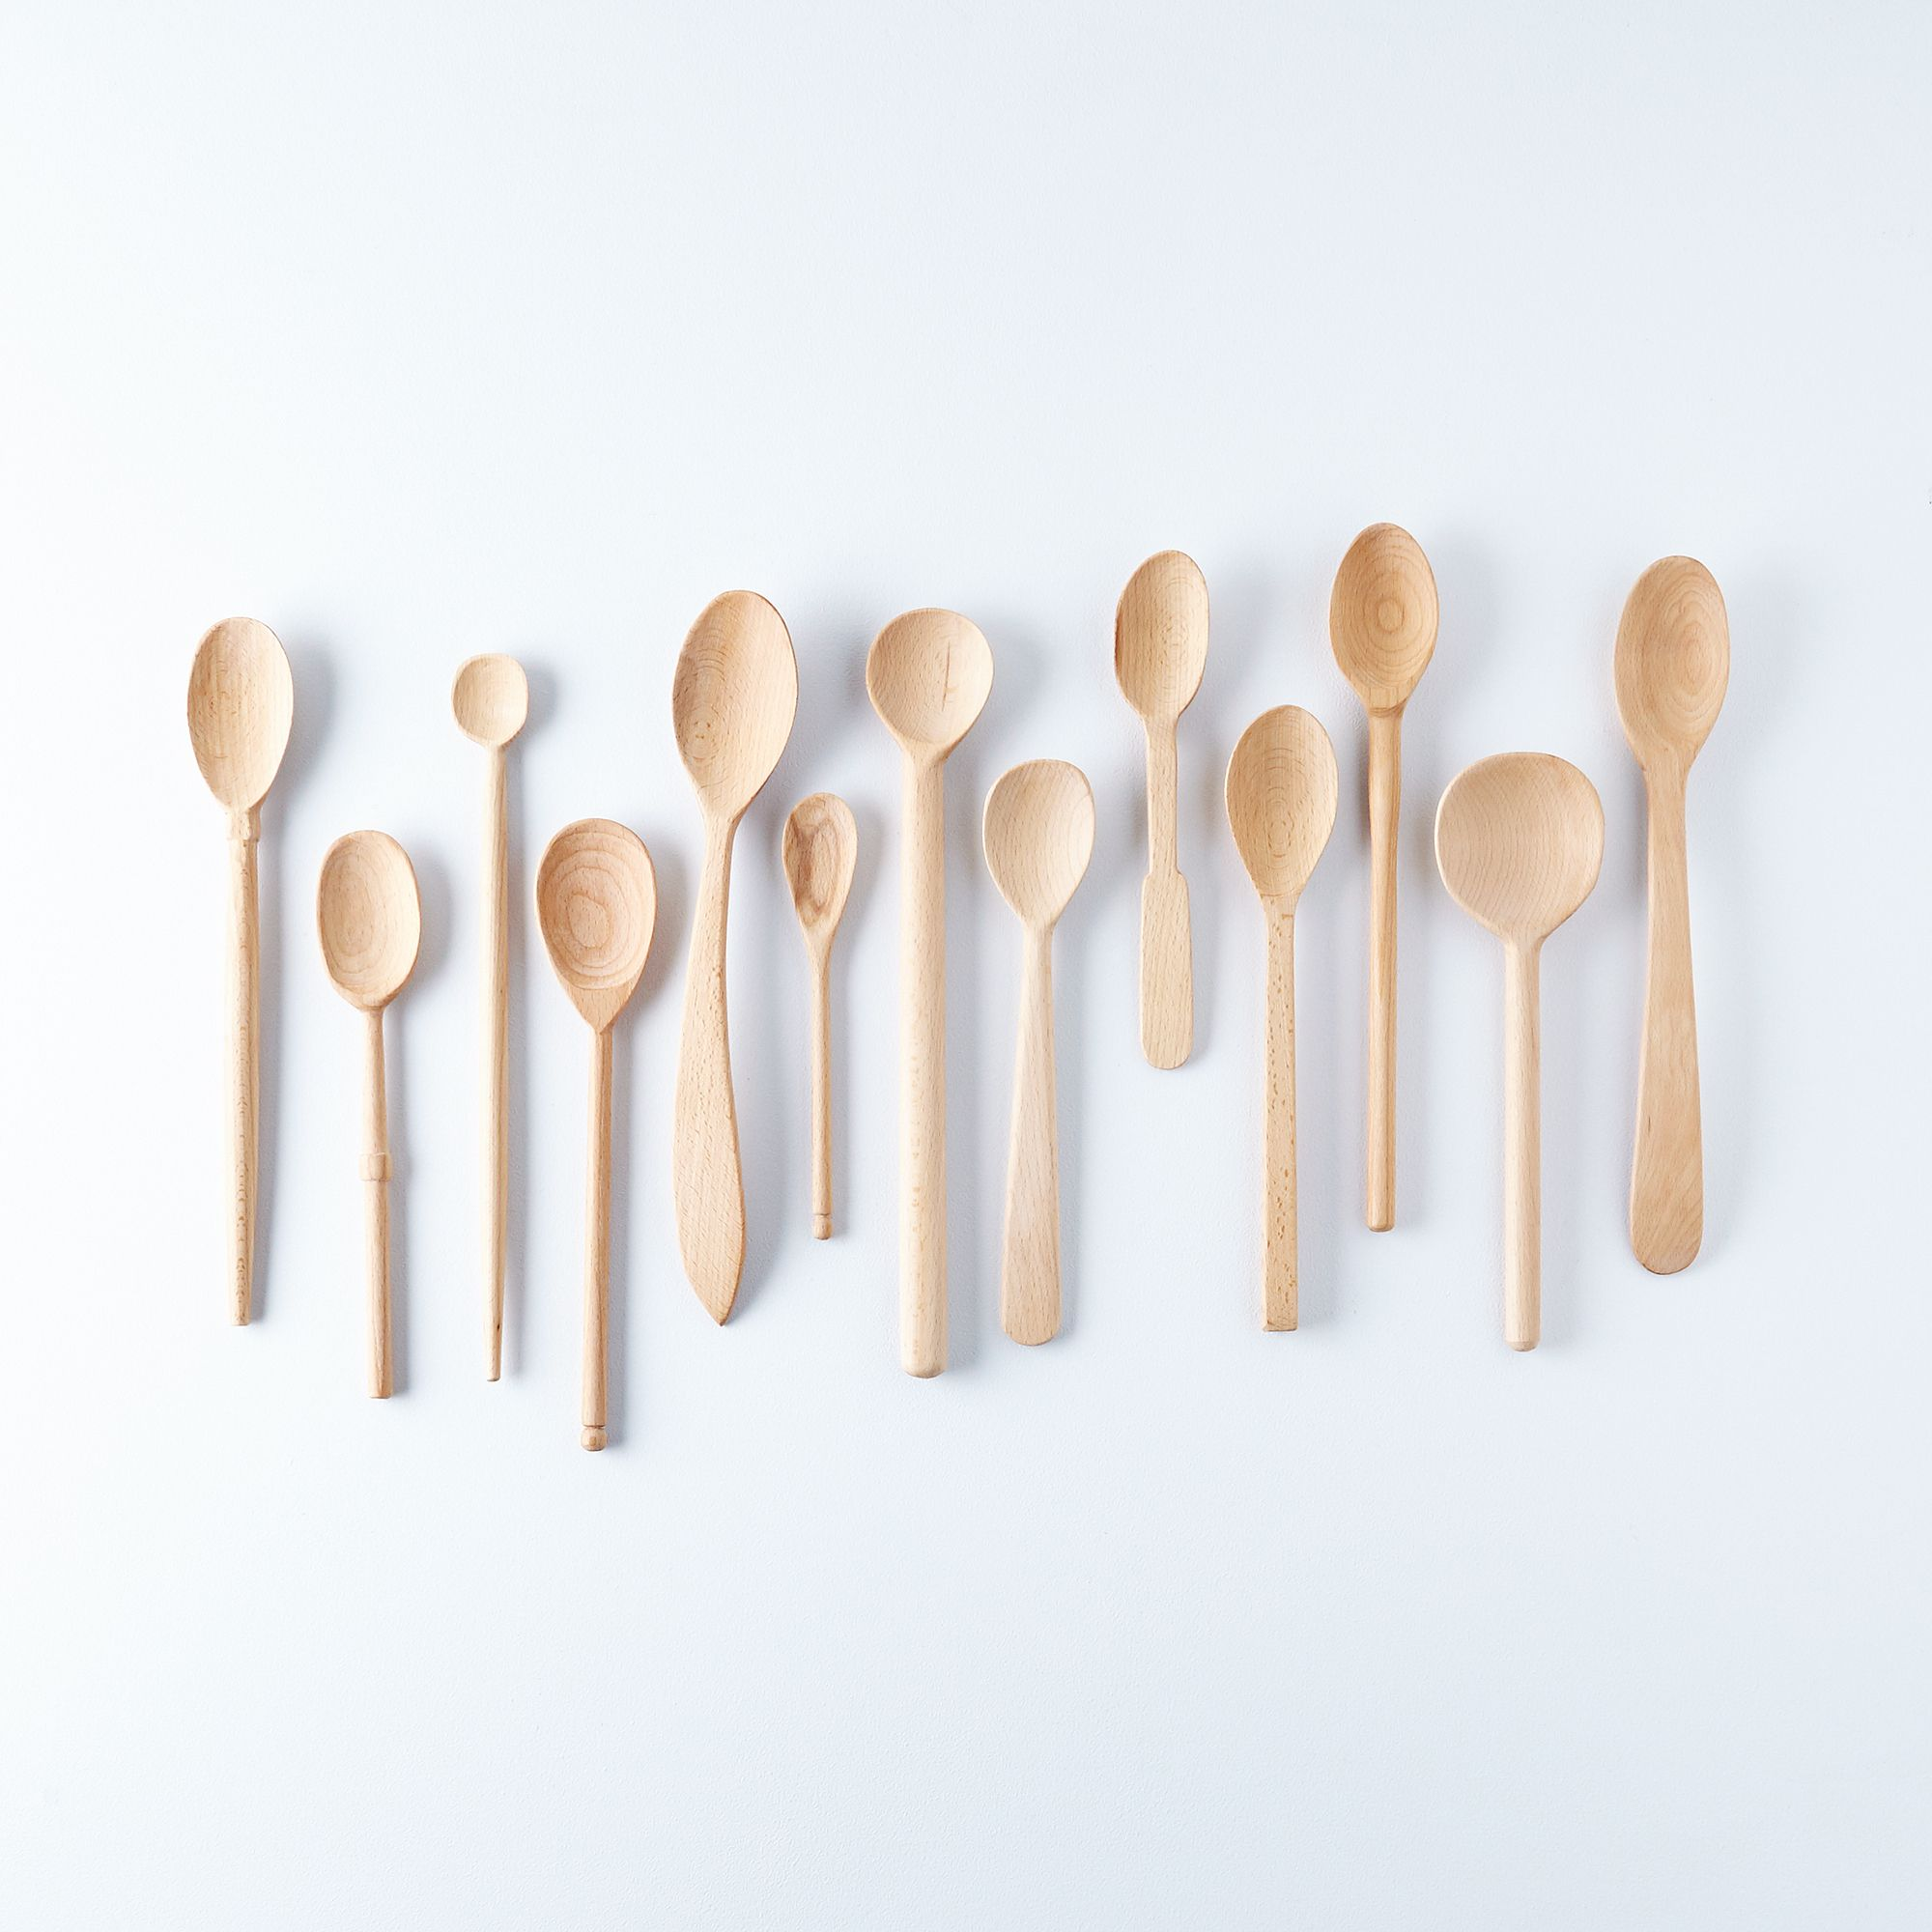 Utensils by Jani Pauli